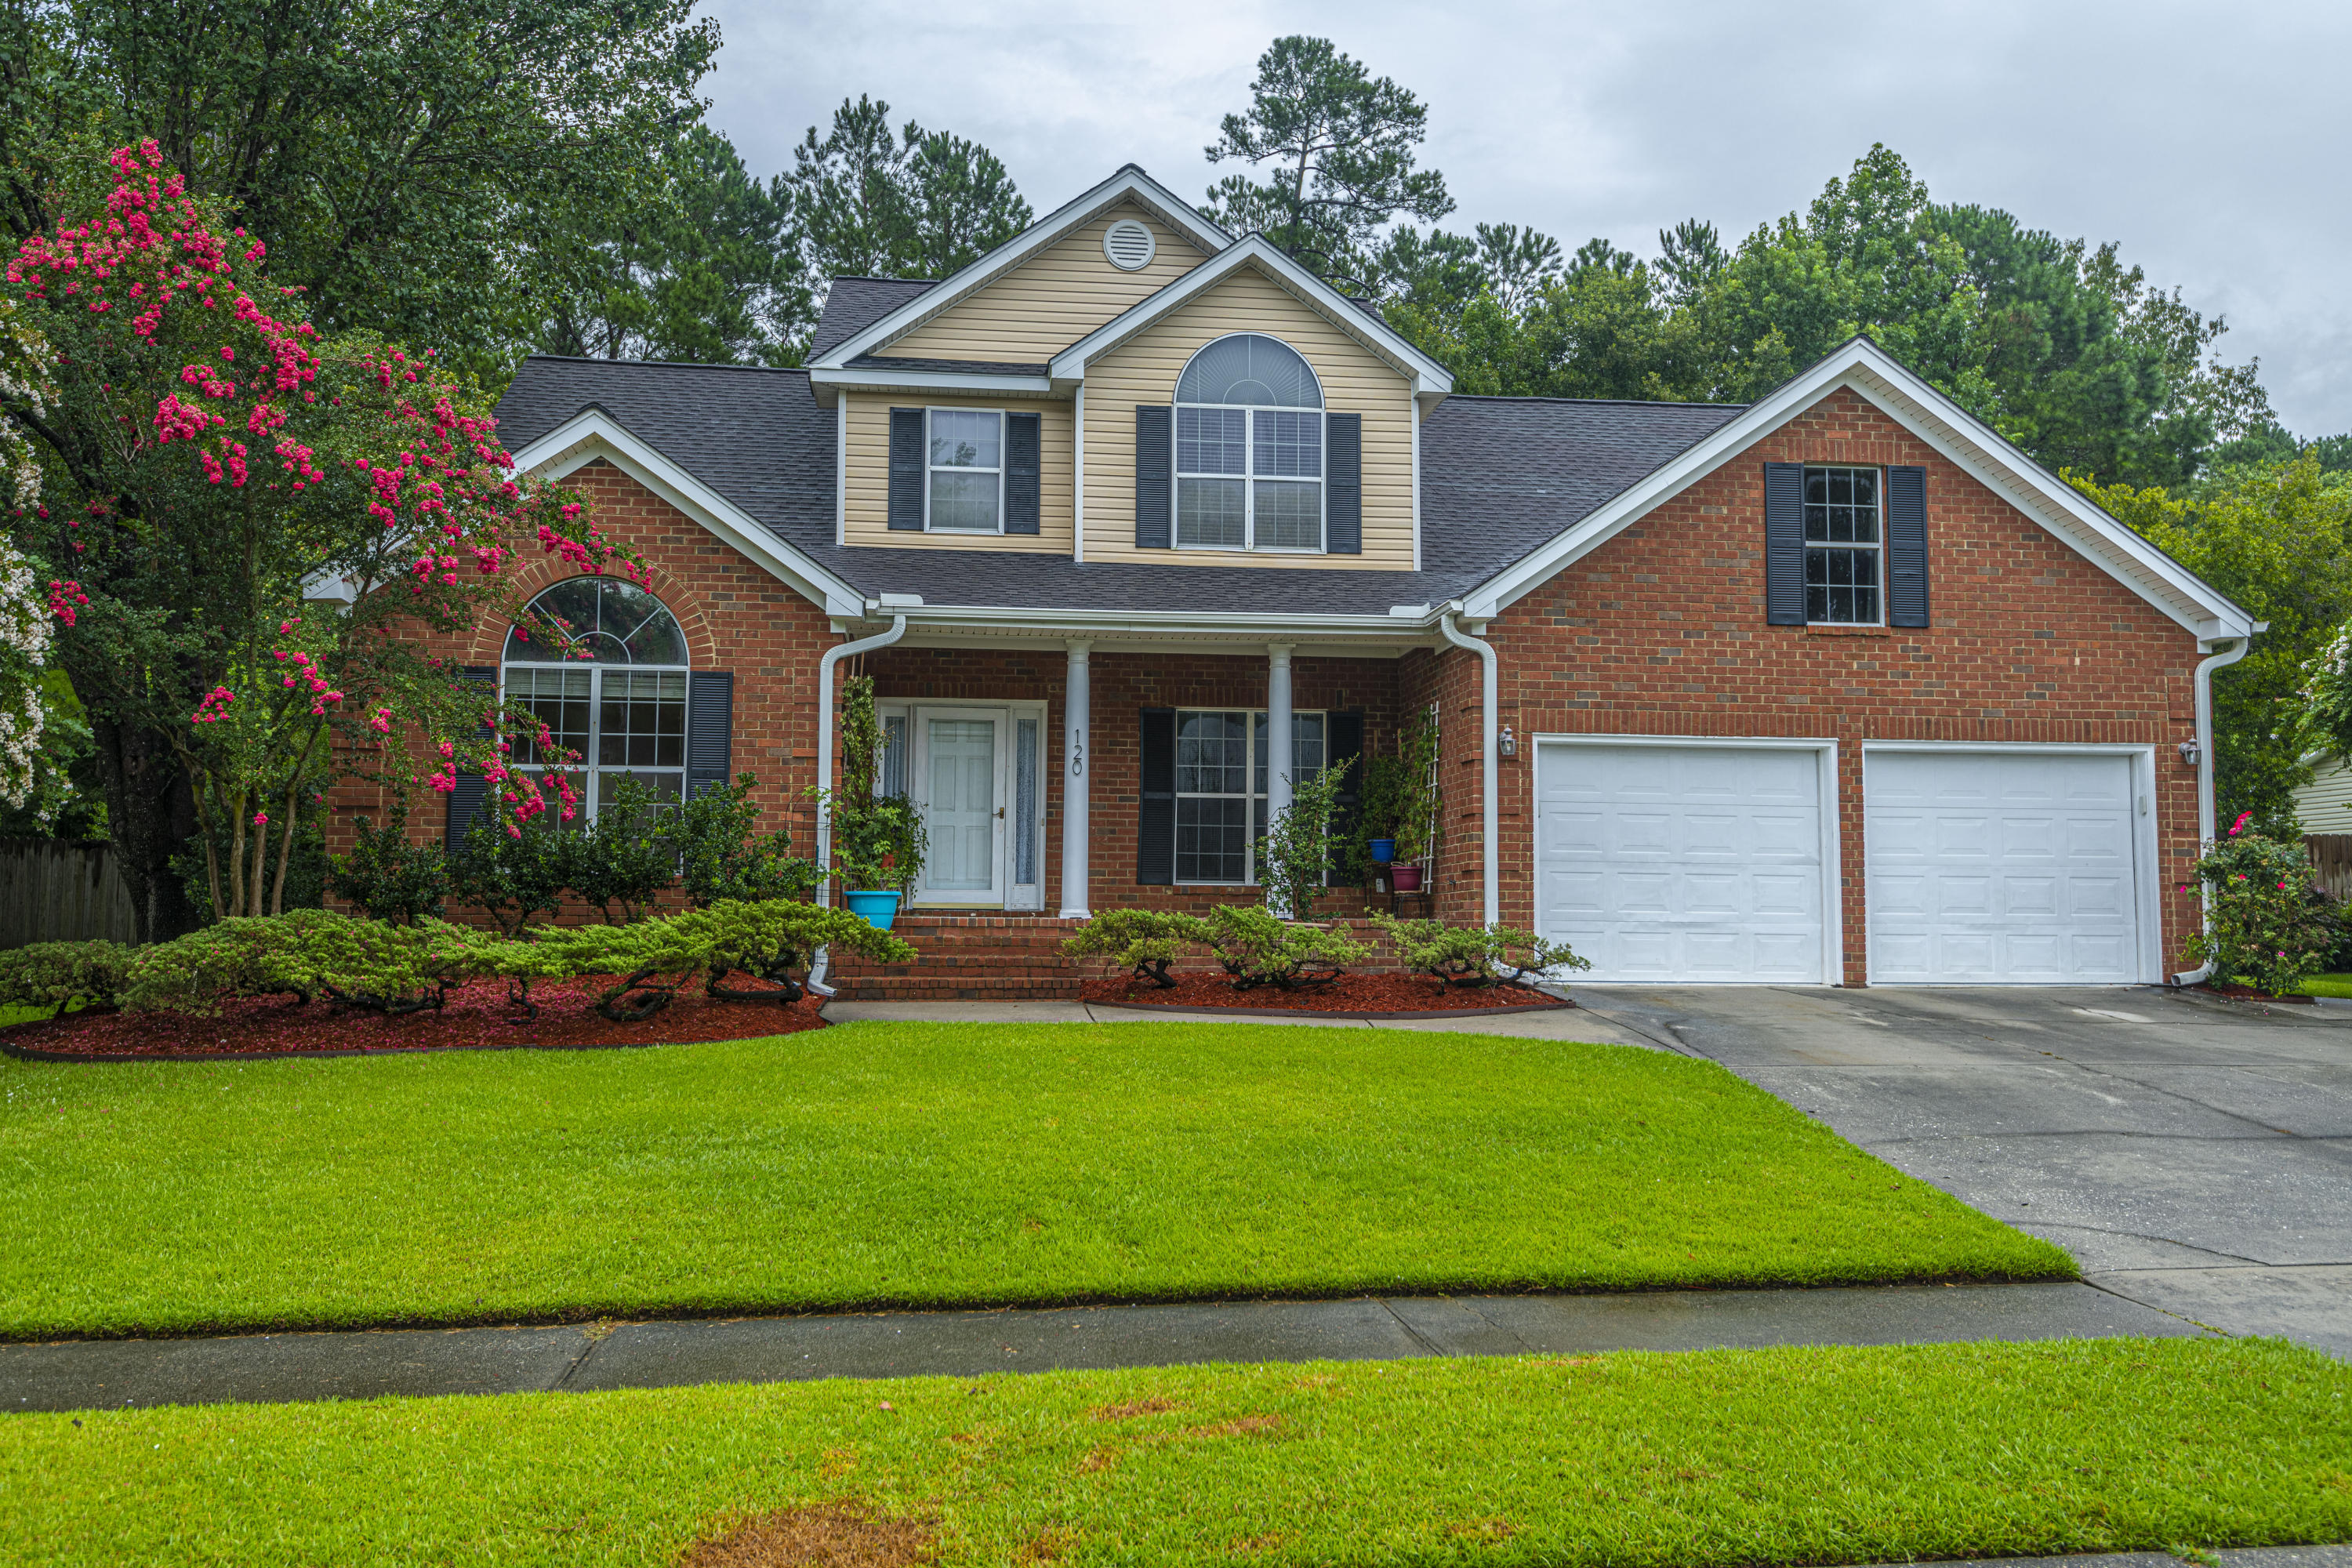 120 Winding Rock Rd Goose Creek, SC 29445